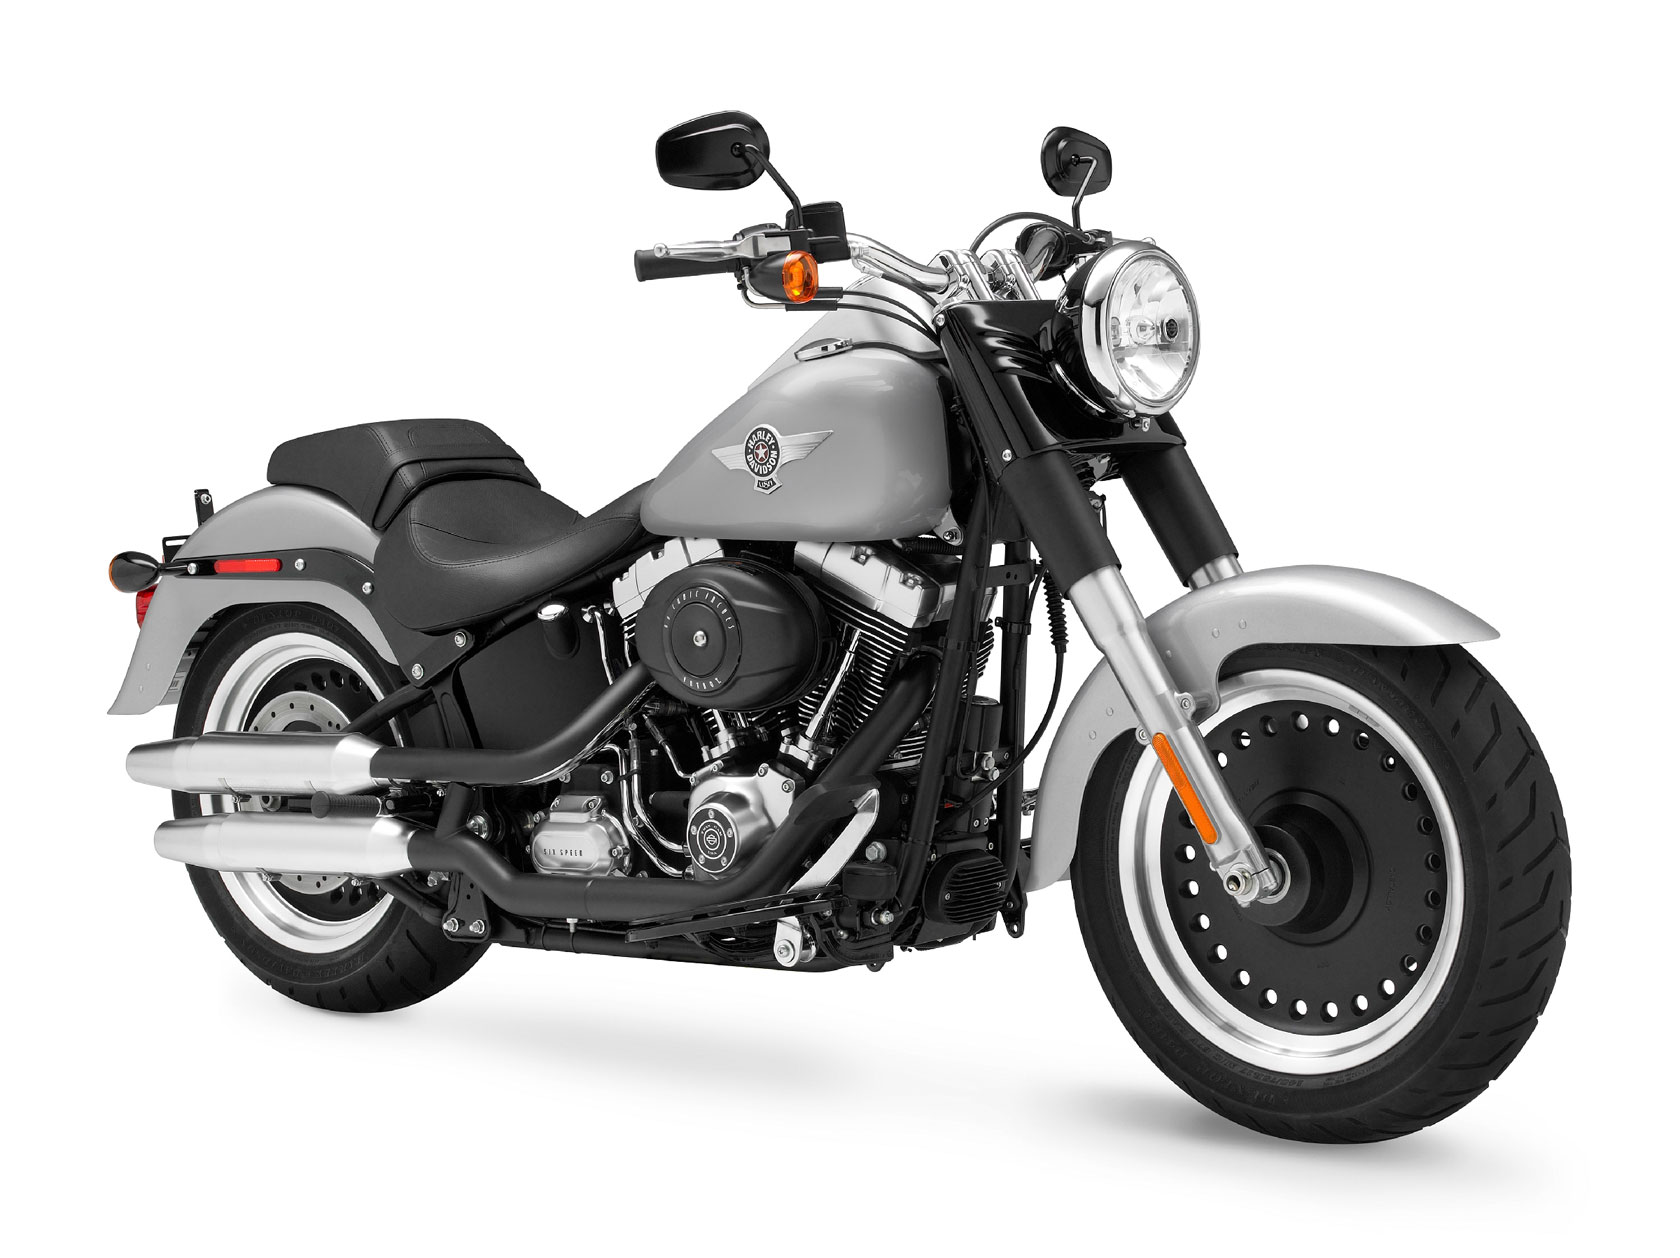 2011 Harley Davidson FLSTFB Fat Boy 1 THE FAT BOY IN THE MARKET!